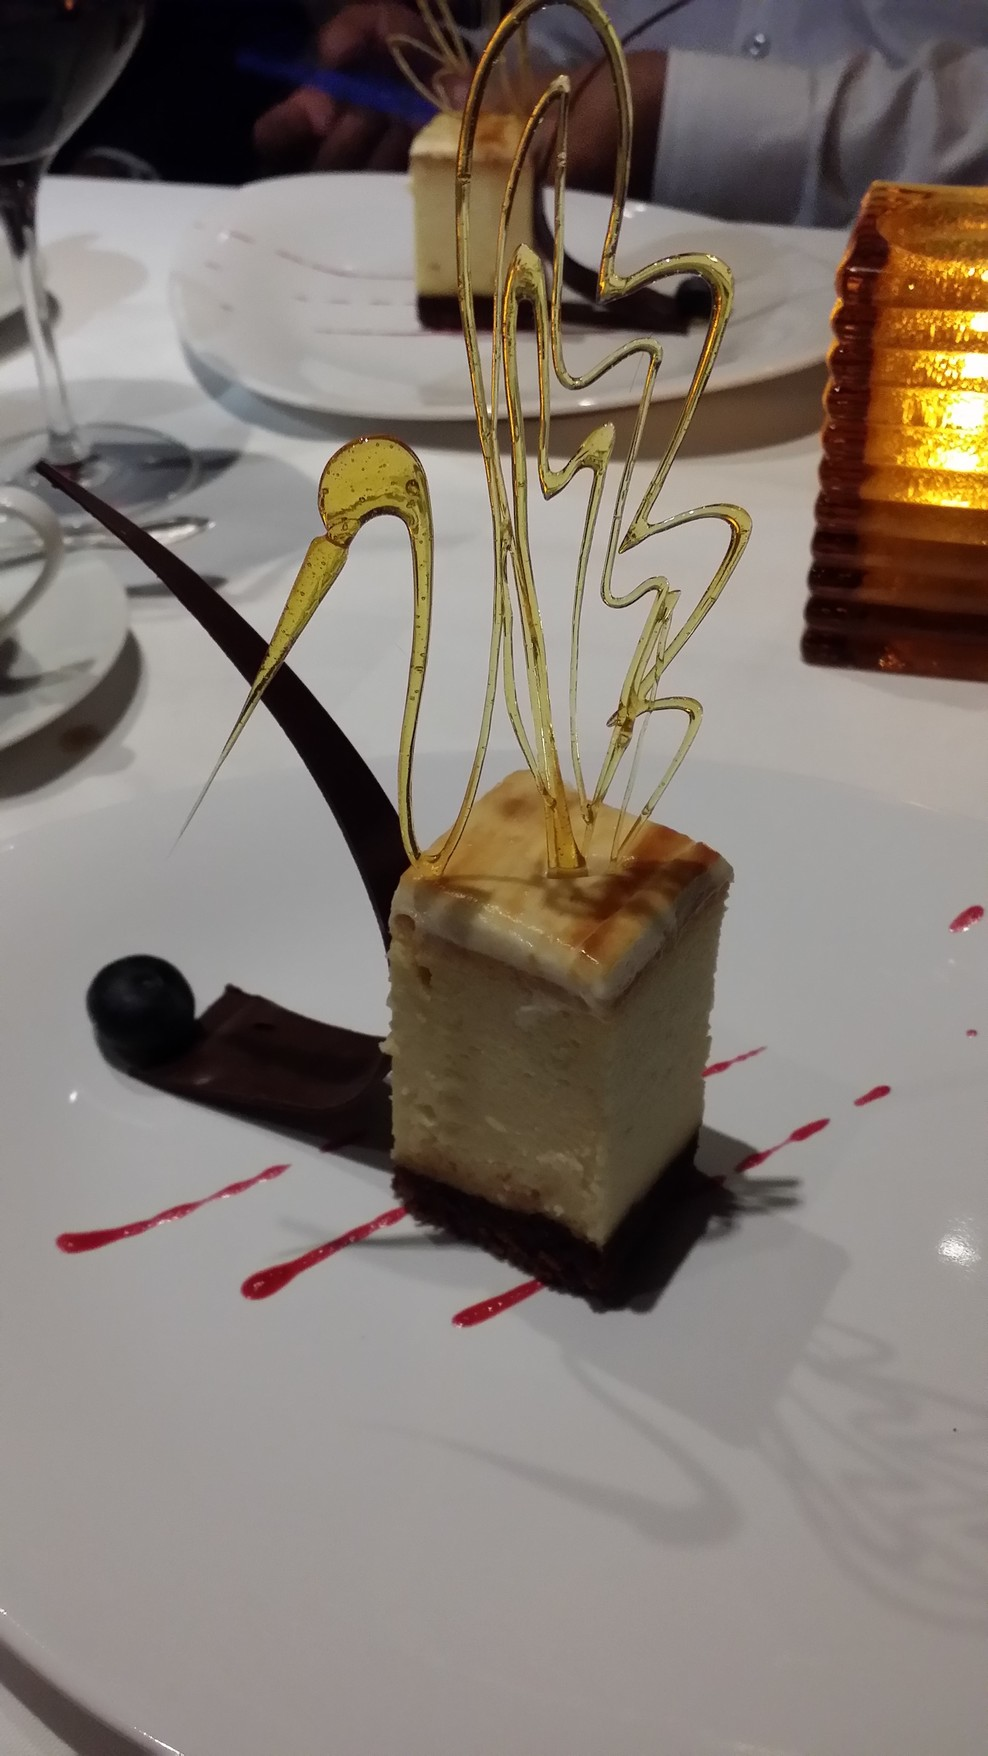 Special desert at Scarlett's Steakhouse on Valor